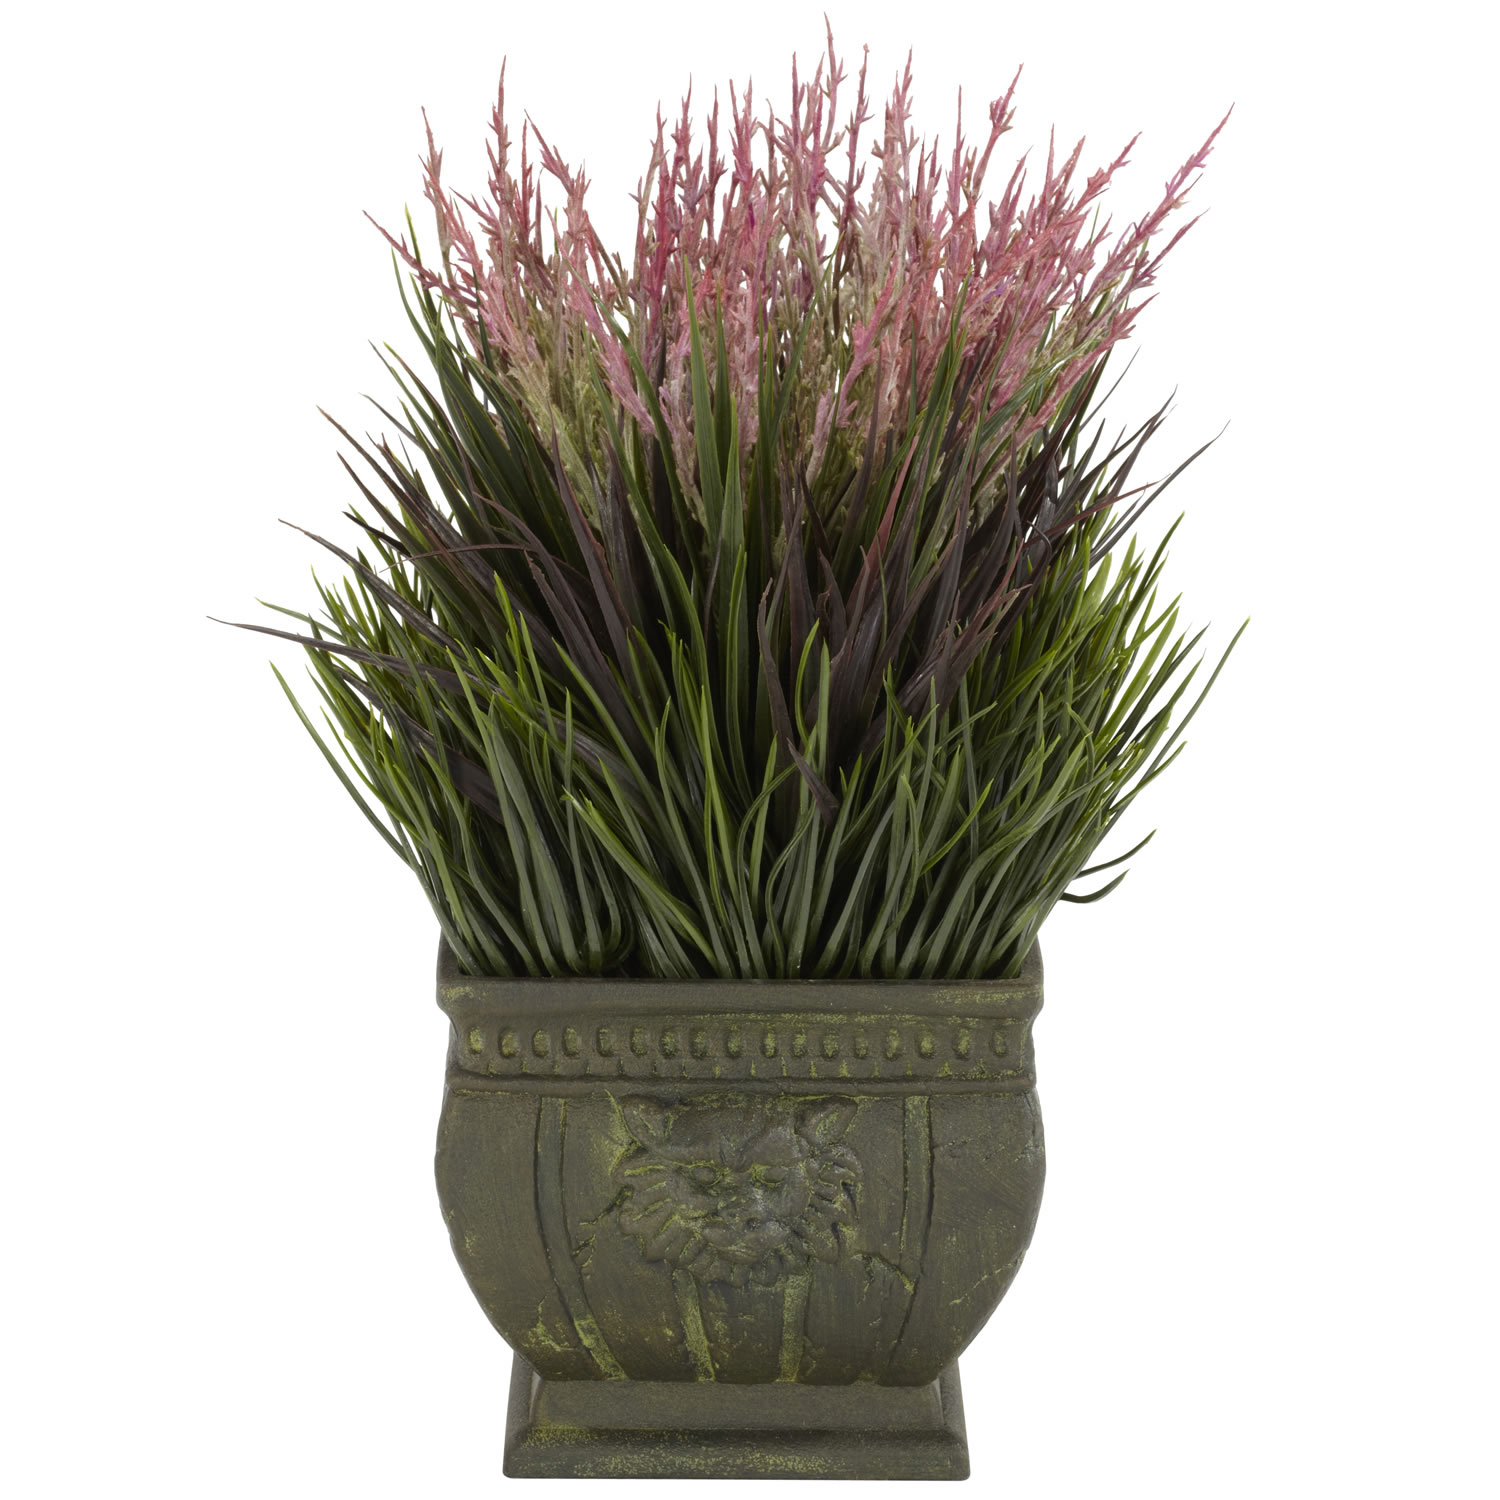 13 inch mixed grass in planter 4124 for Ornamental grasses for planters